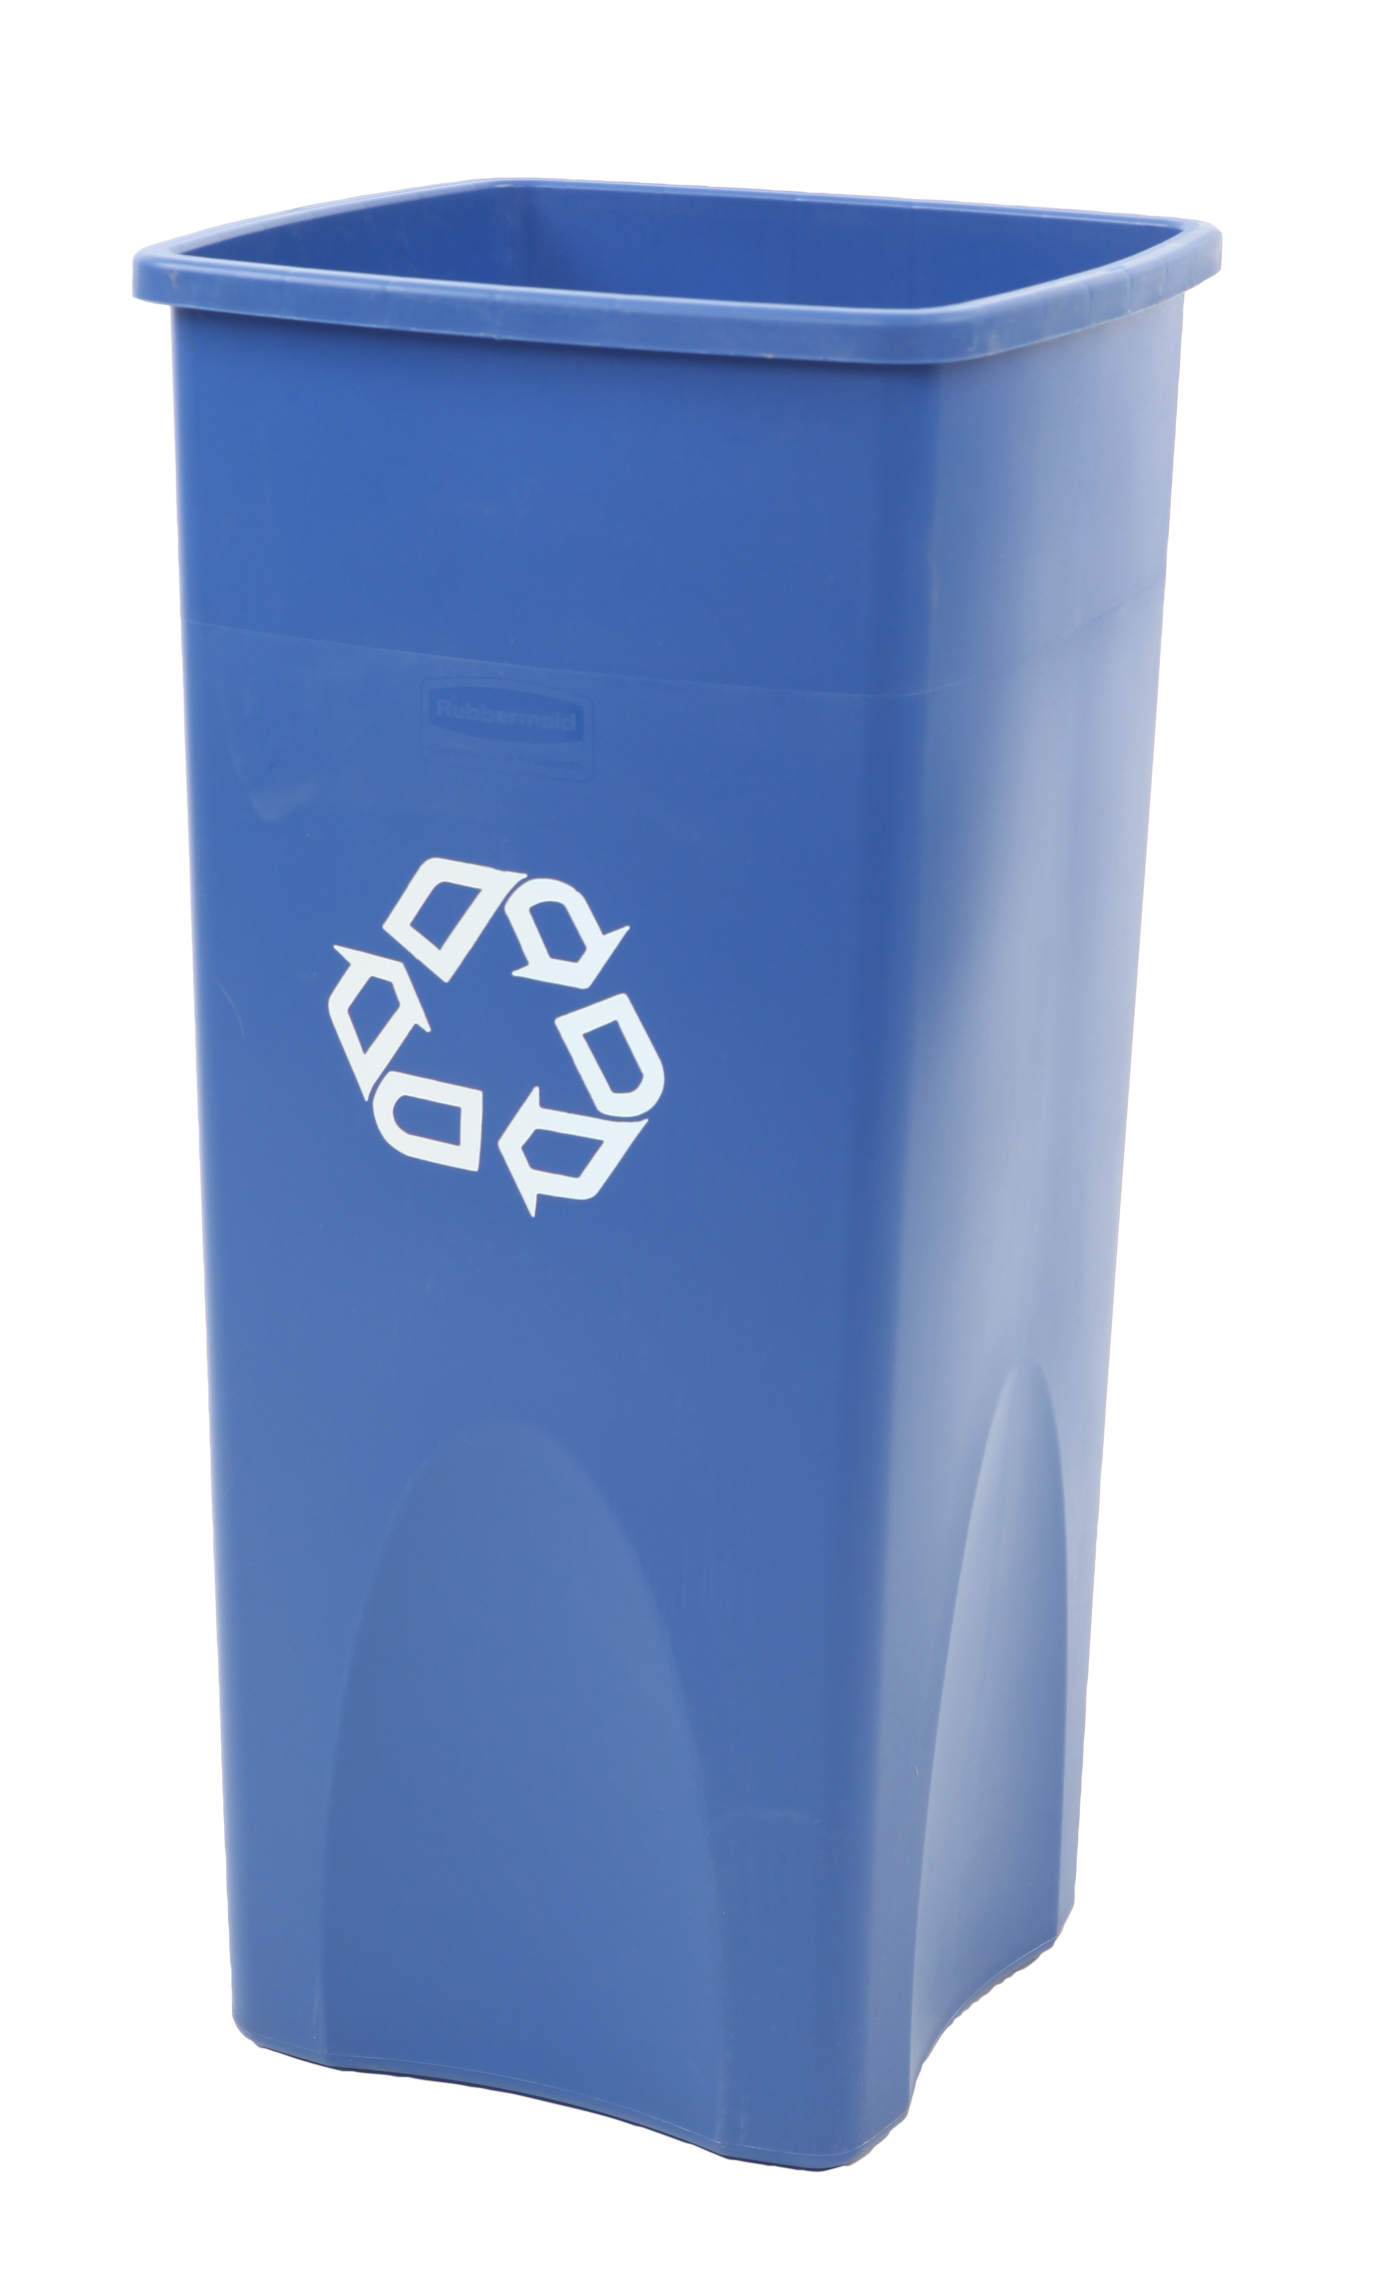 Rubbermaid Untouchable Container, Blauw Recyclingsymbool (VB003569B)